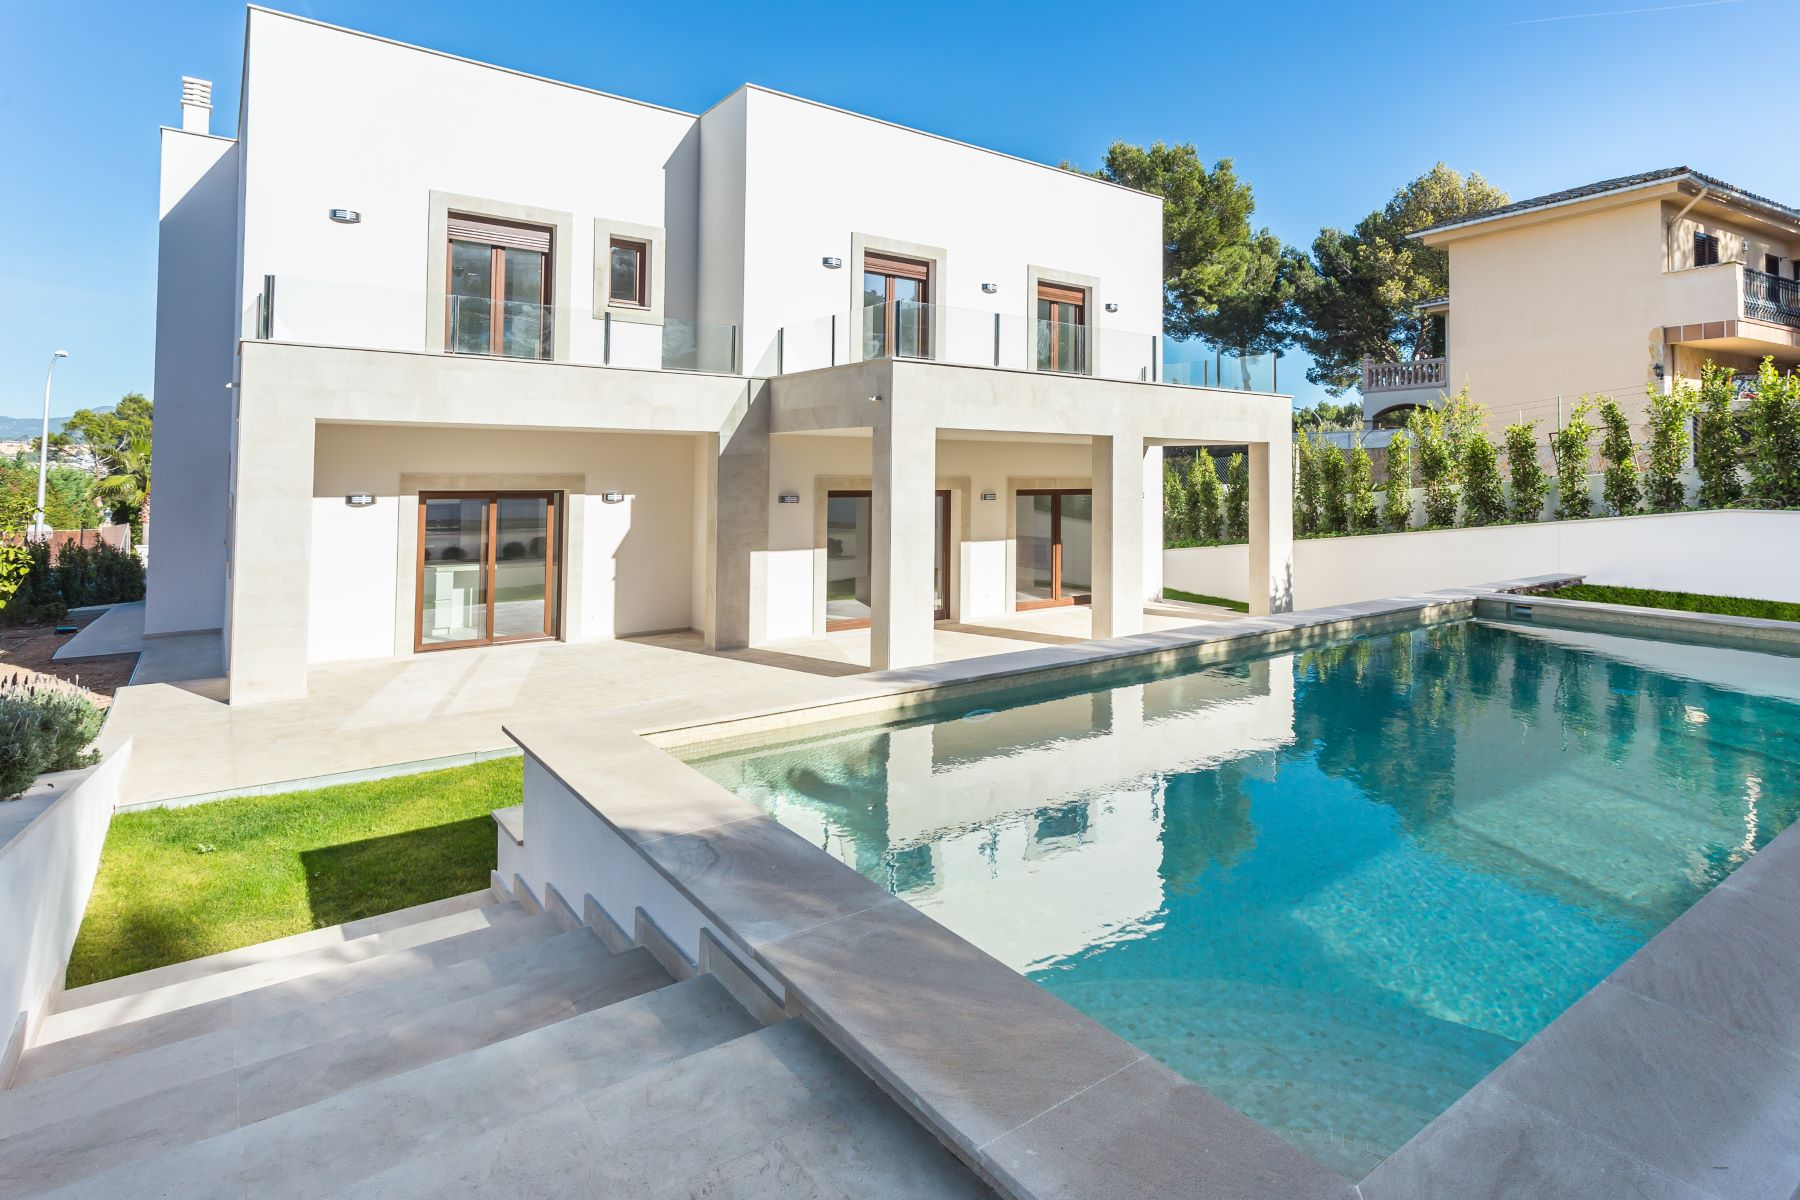 Single Family Home for Sale at Luxury villa under construction Nova Santa Ponsa, Mallorca, Spain